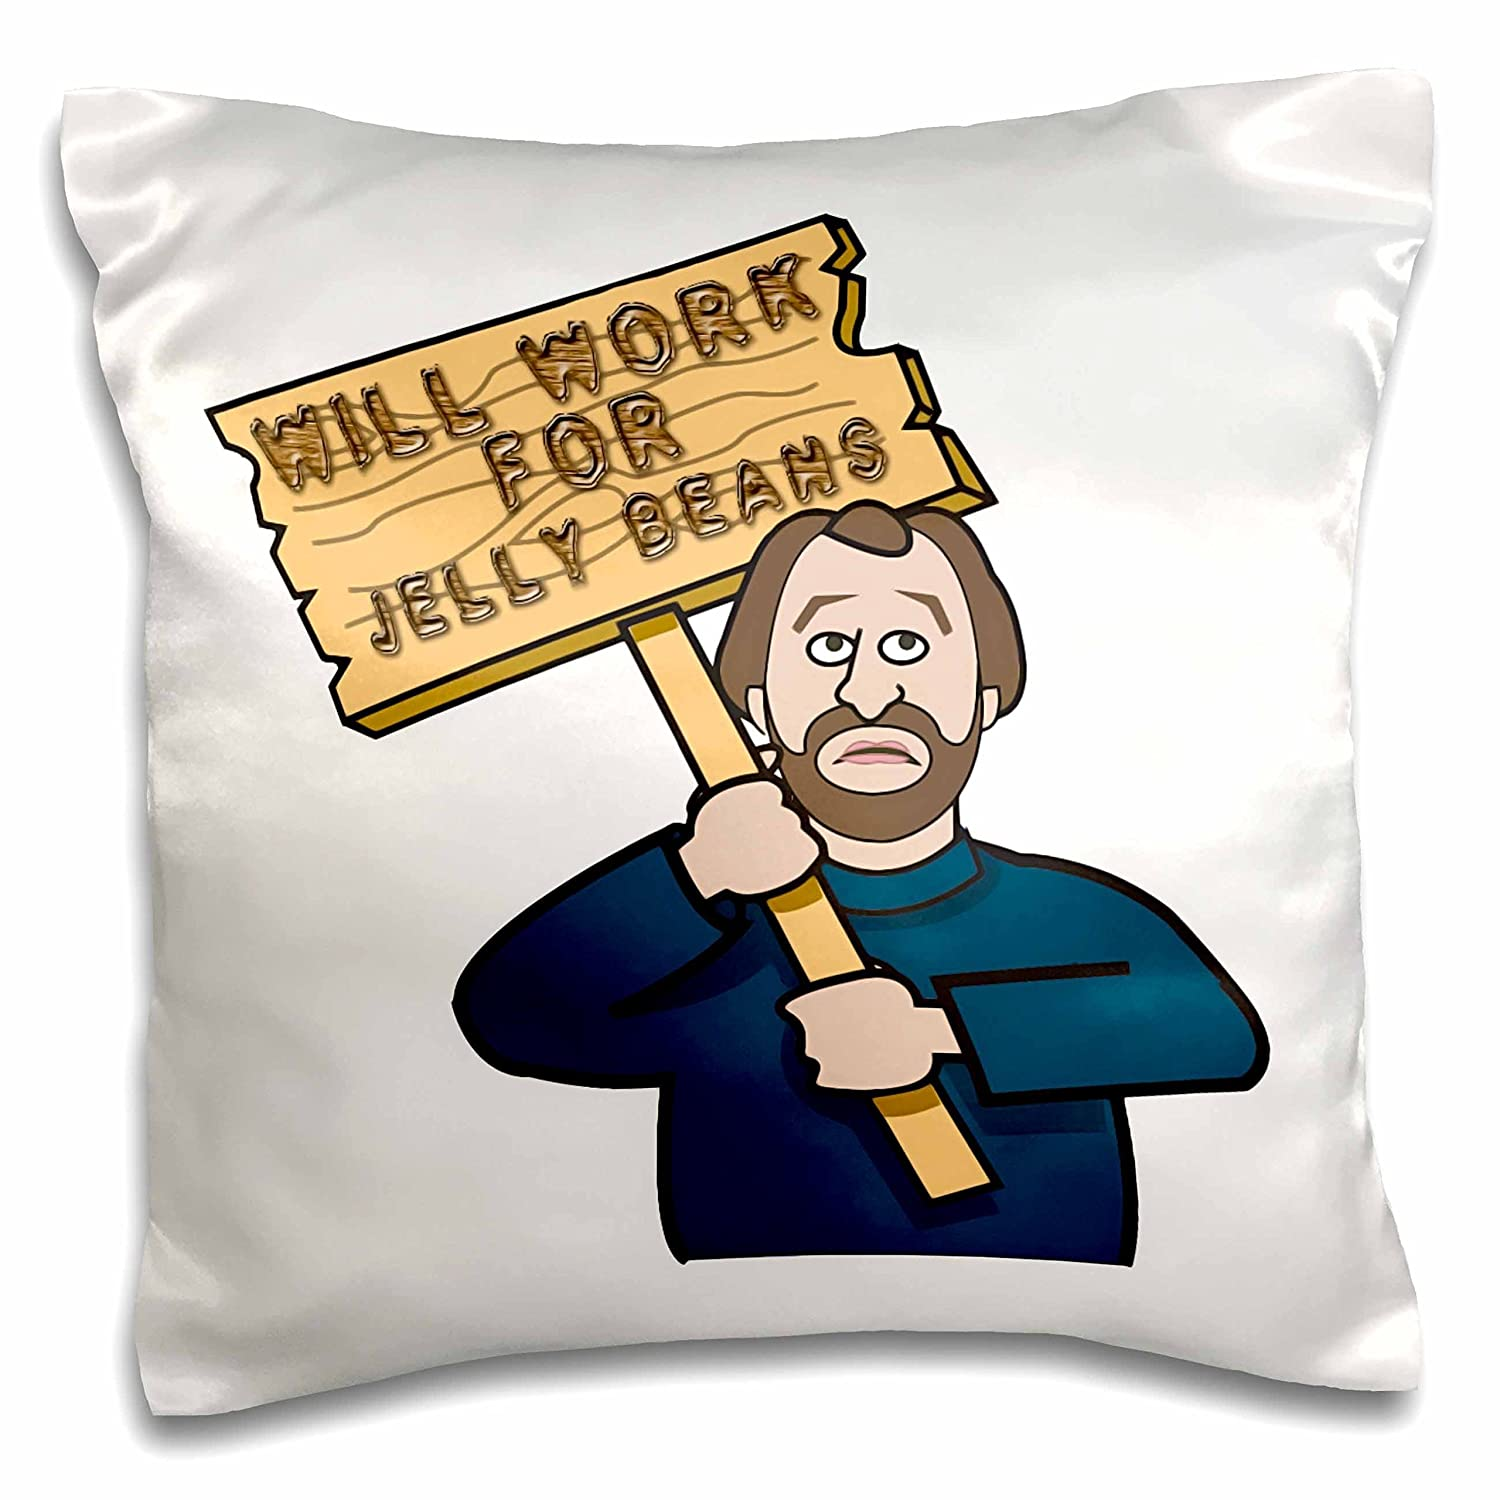 16 By 16 3drose Pc 117099 1 Funny Humorous Man Guy With A Sign Will Work For Jelly Beans Pillow Case Home Kitchen Bedding